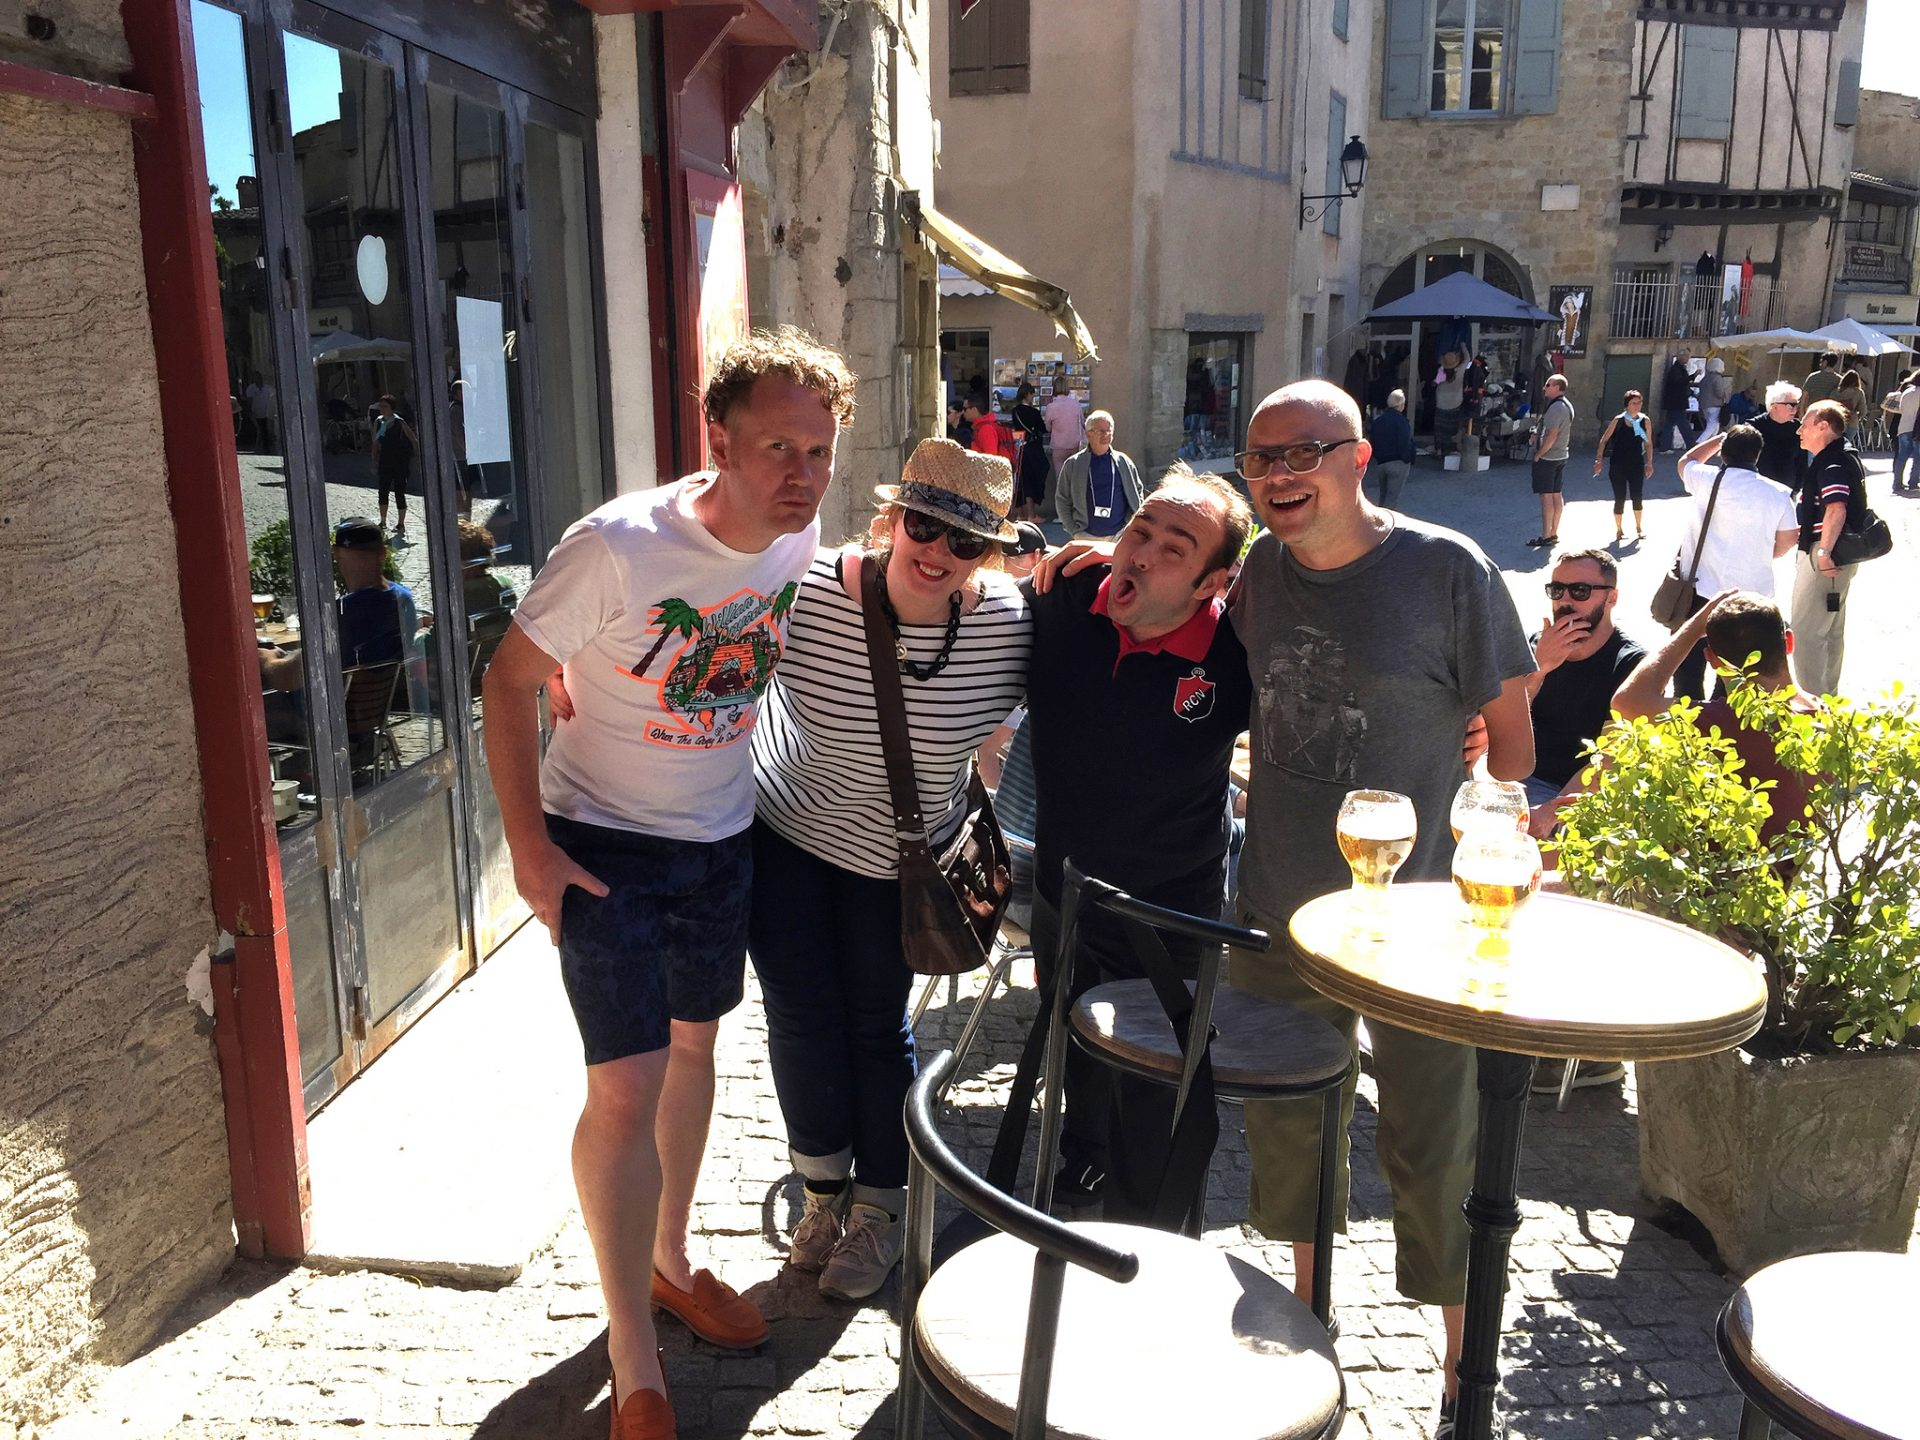 With Lorna Drummond, Greg Bolton, and Carcassone Sommelier Olivier Zavattin, enjoying a few drinks in the old walled city.